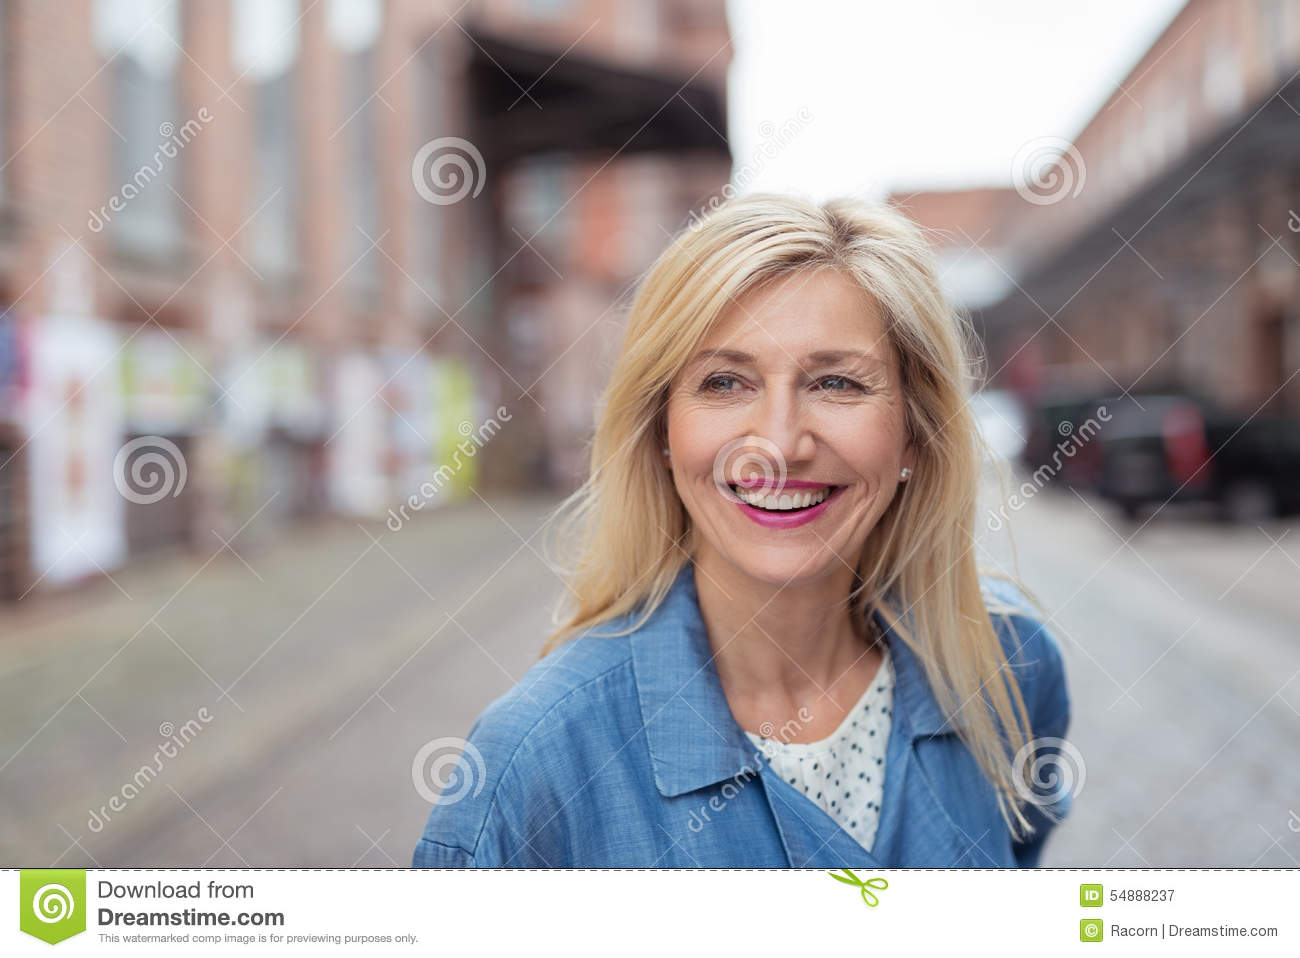 Happy Adult Blond Woman Laughing at the Street